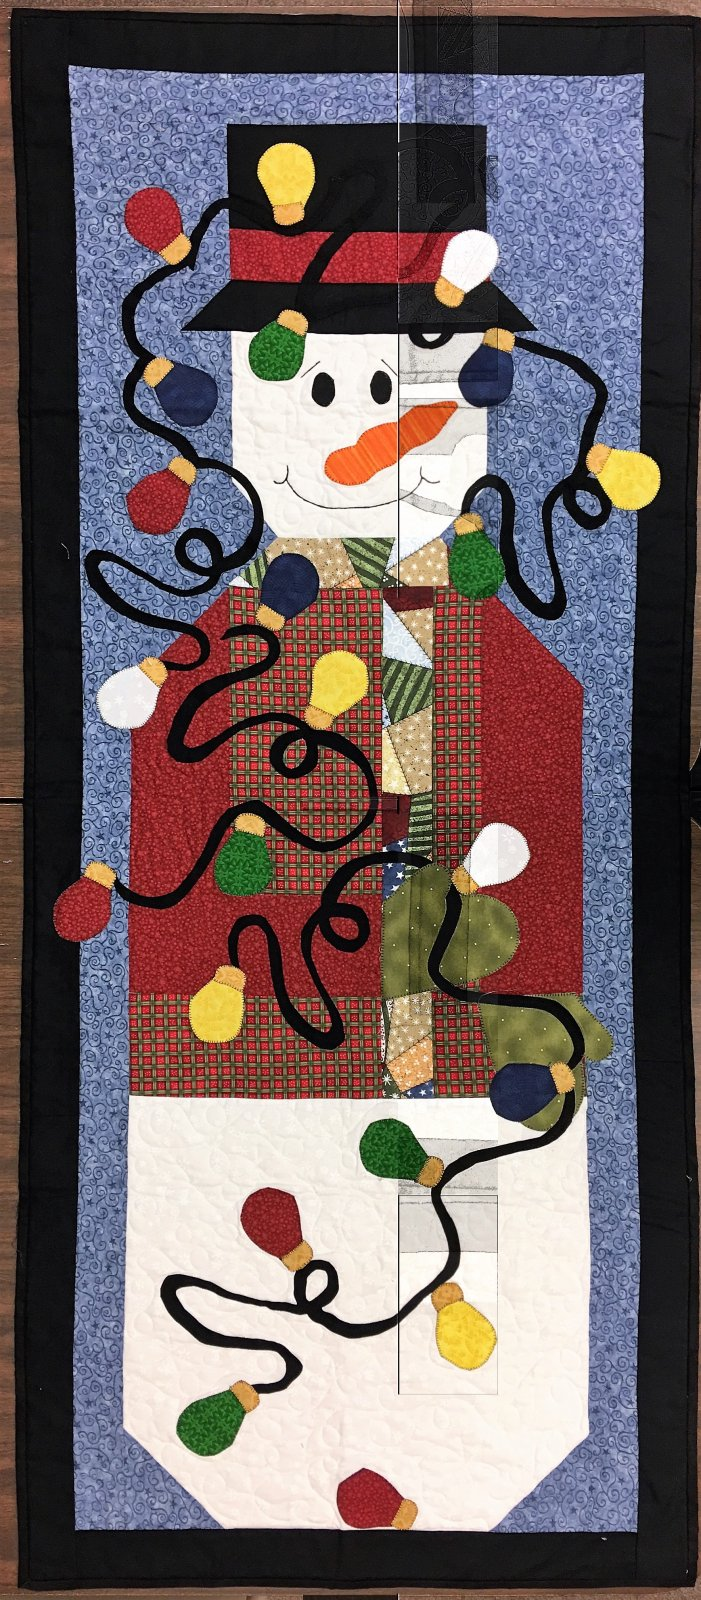 Snowman - Finished Wall Hanging Quilt